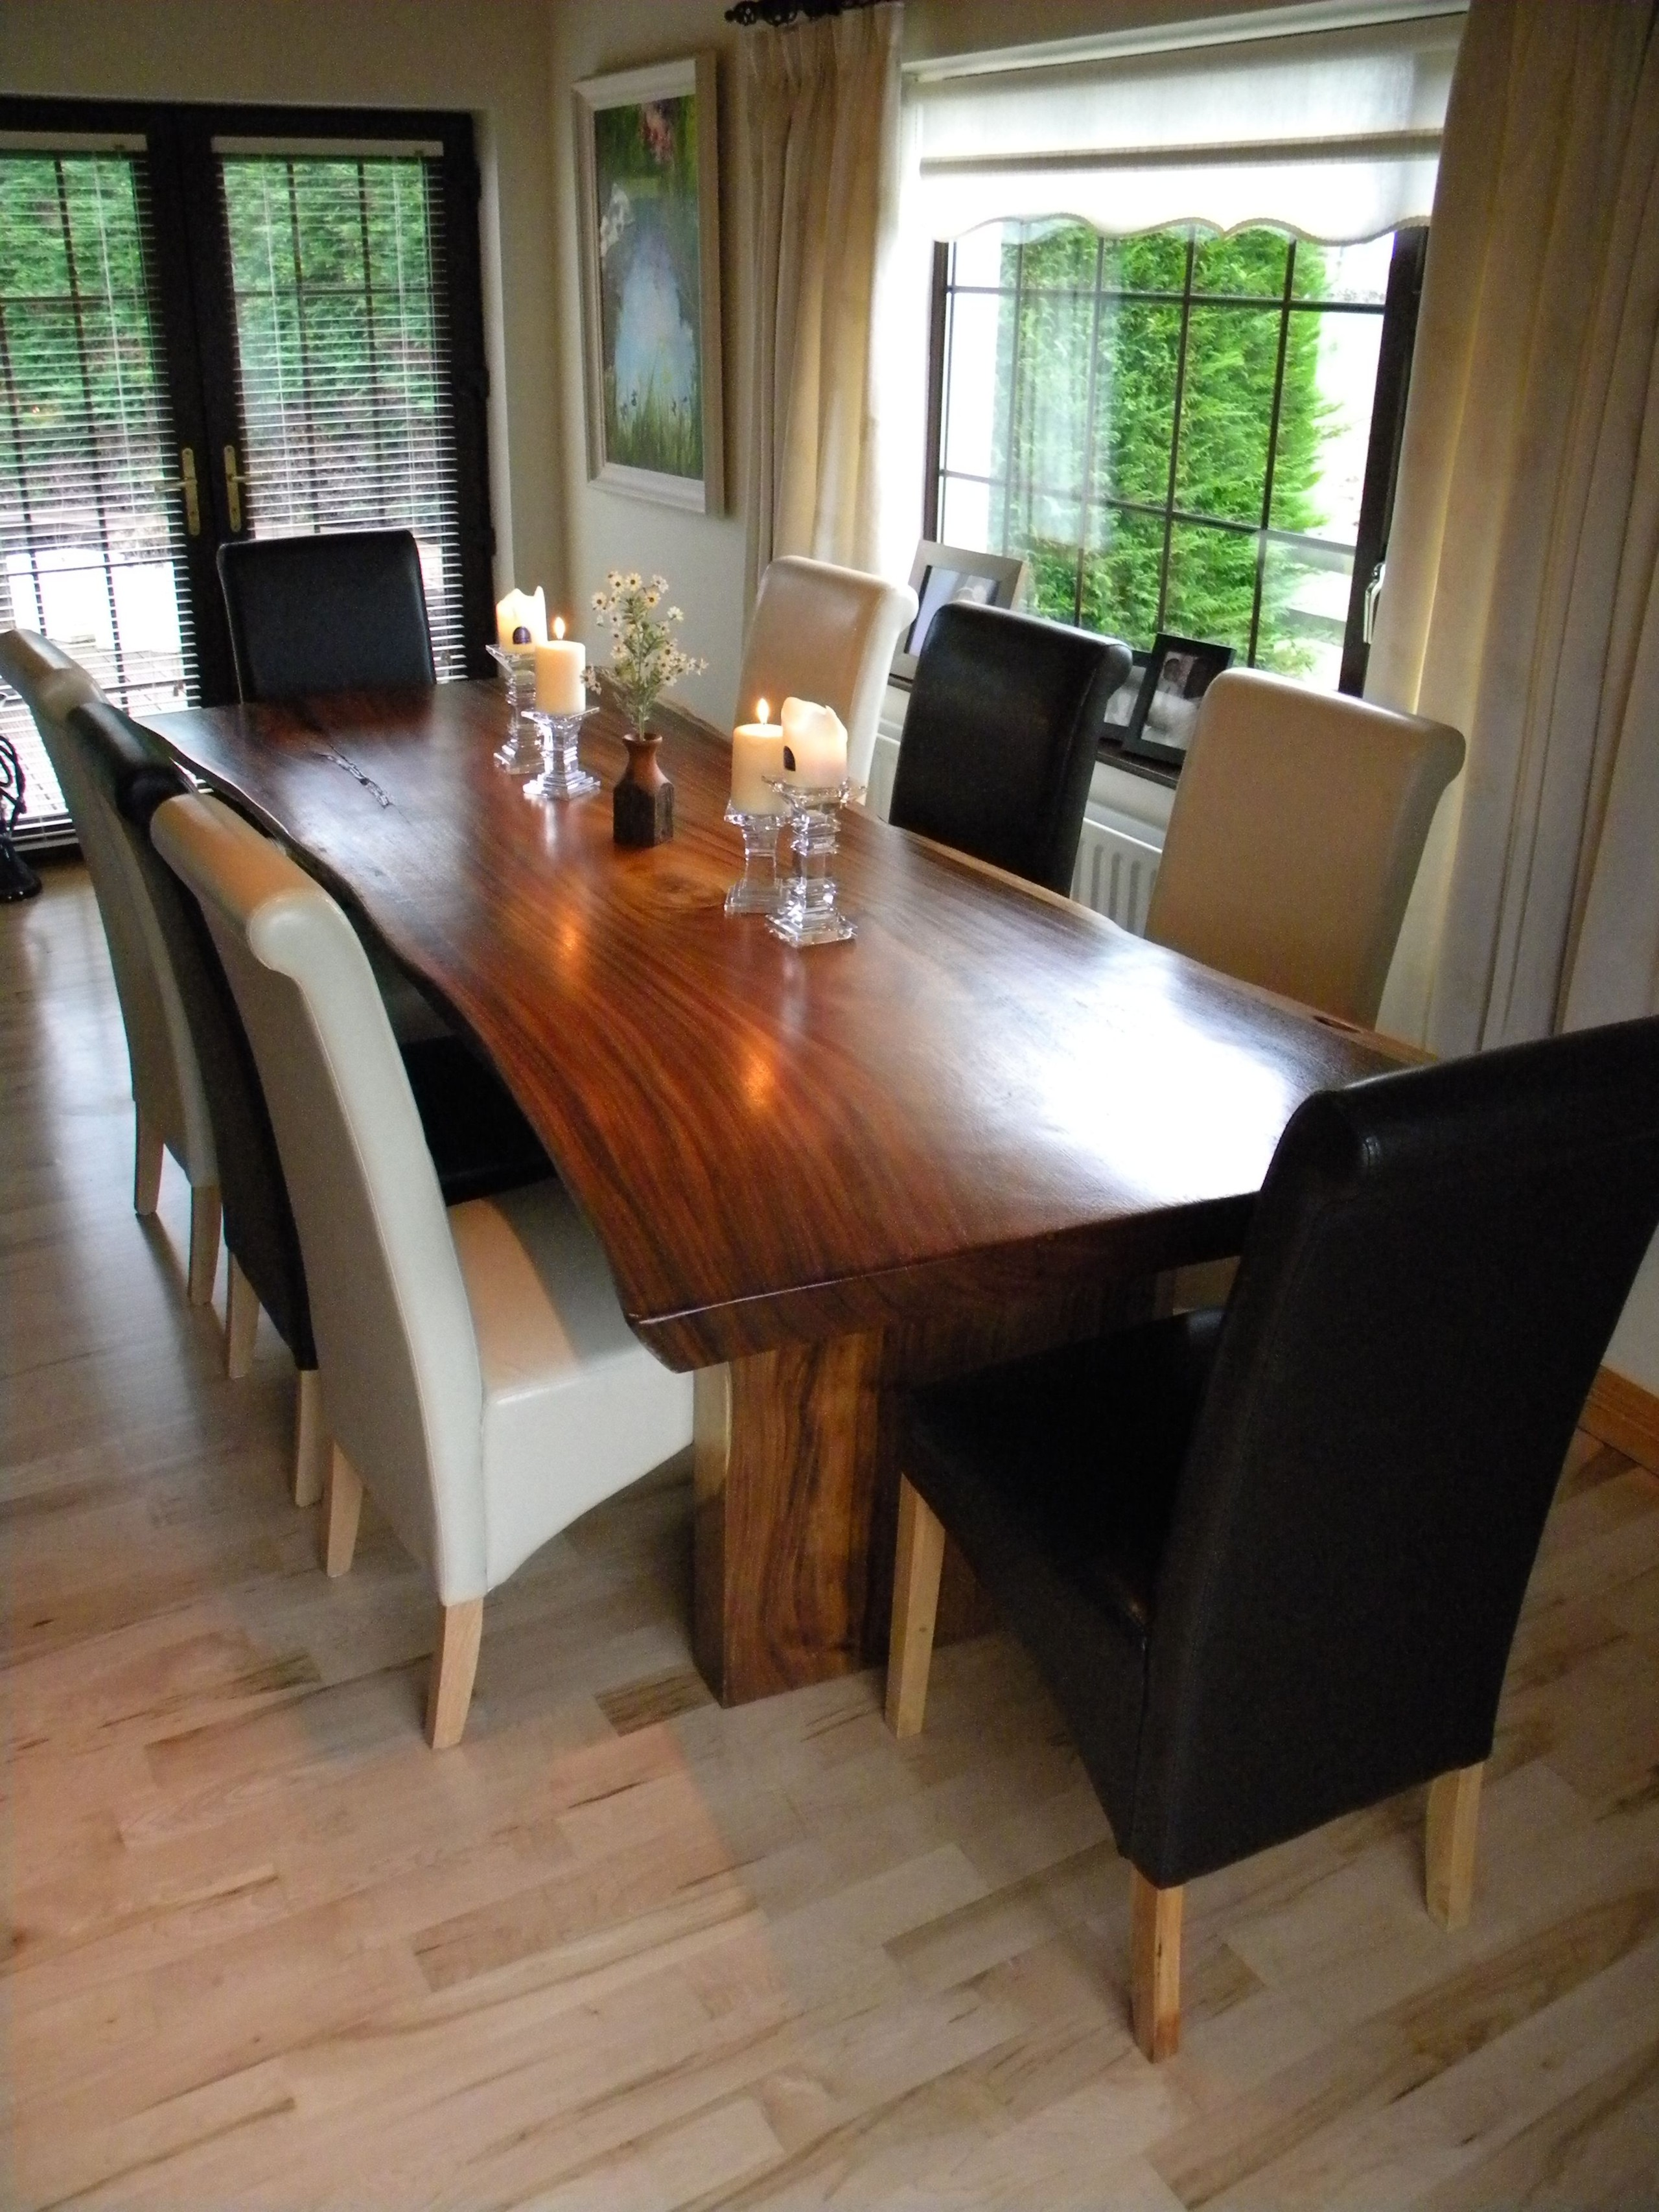 8 seater black dining table & Square 8 Seater Dining Table - Ideas on Foter